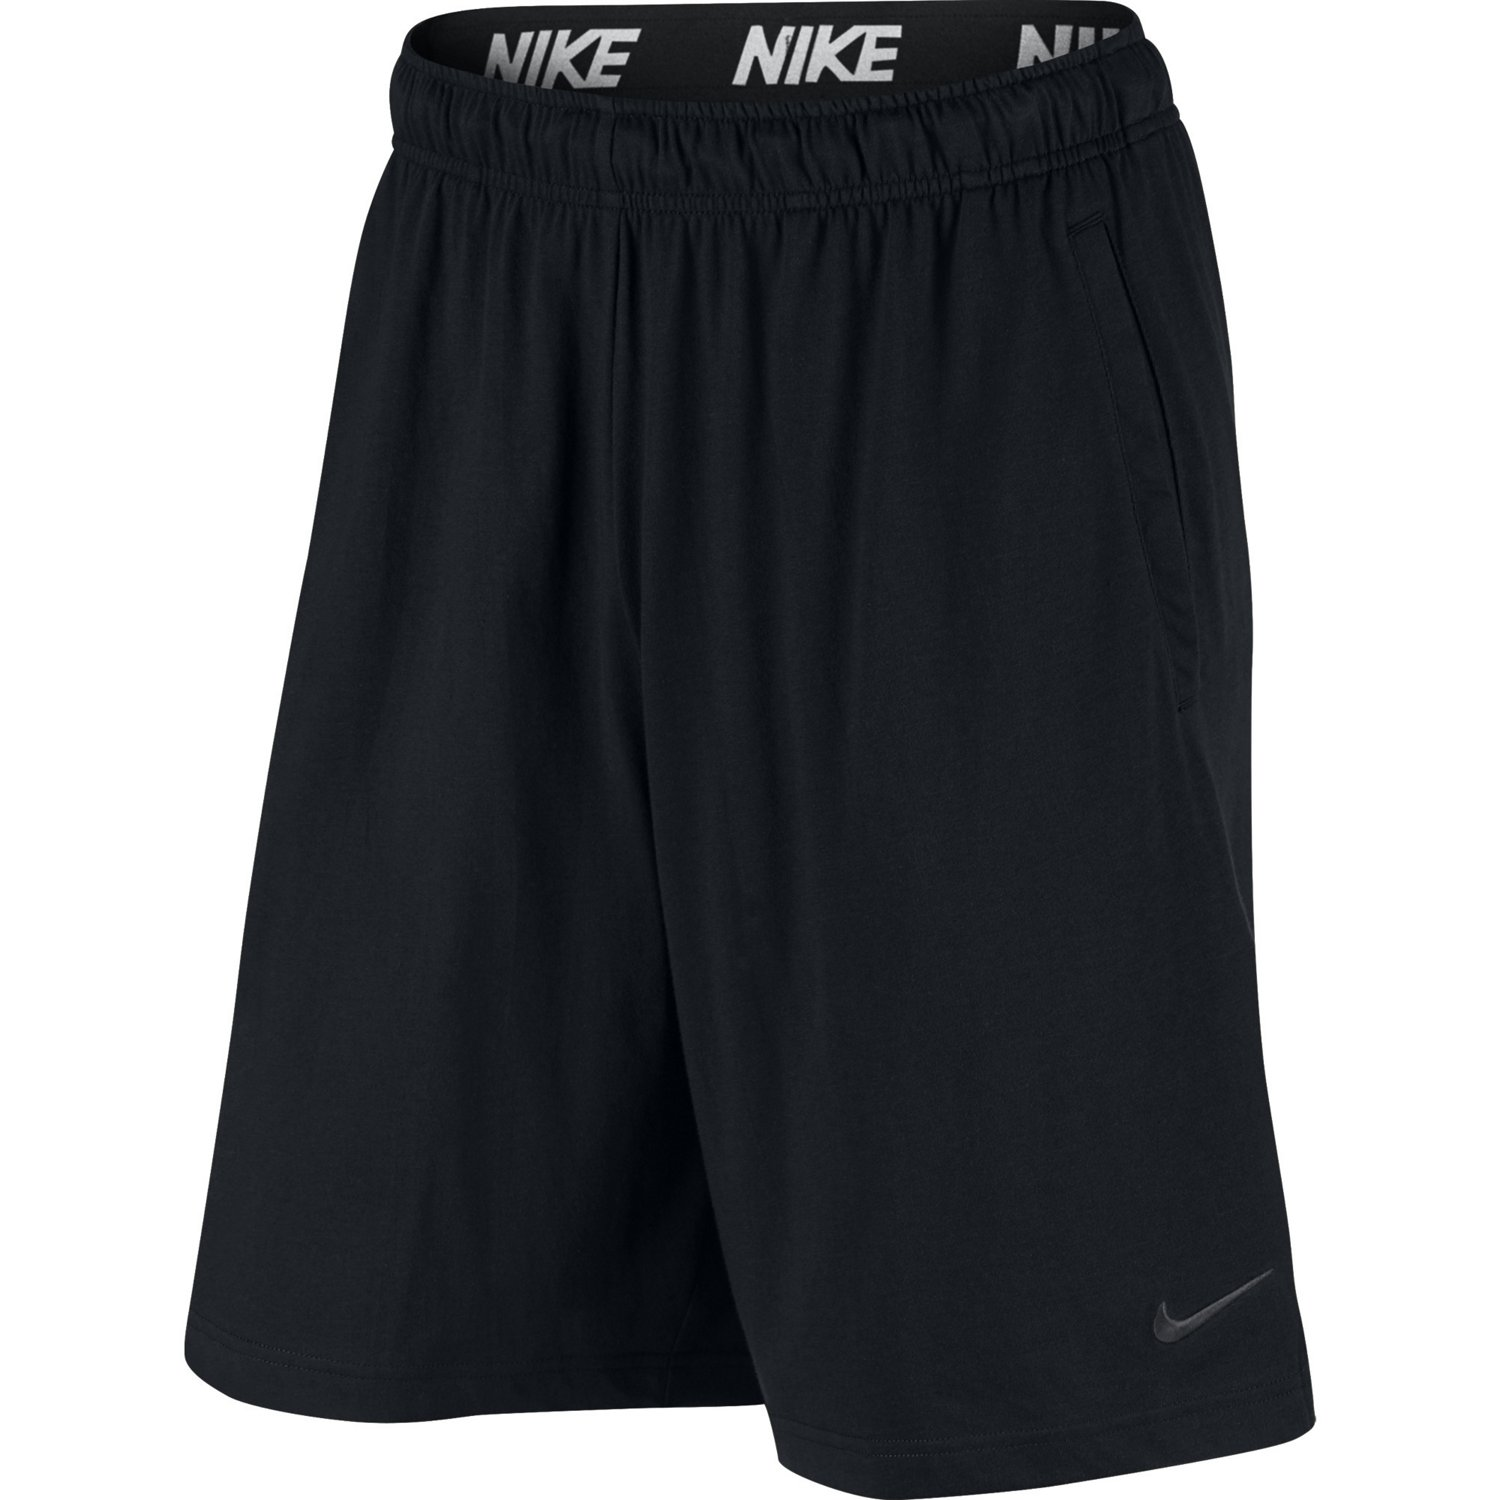 53908cf42da92 Display product reviews for Nike Men's Training Short